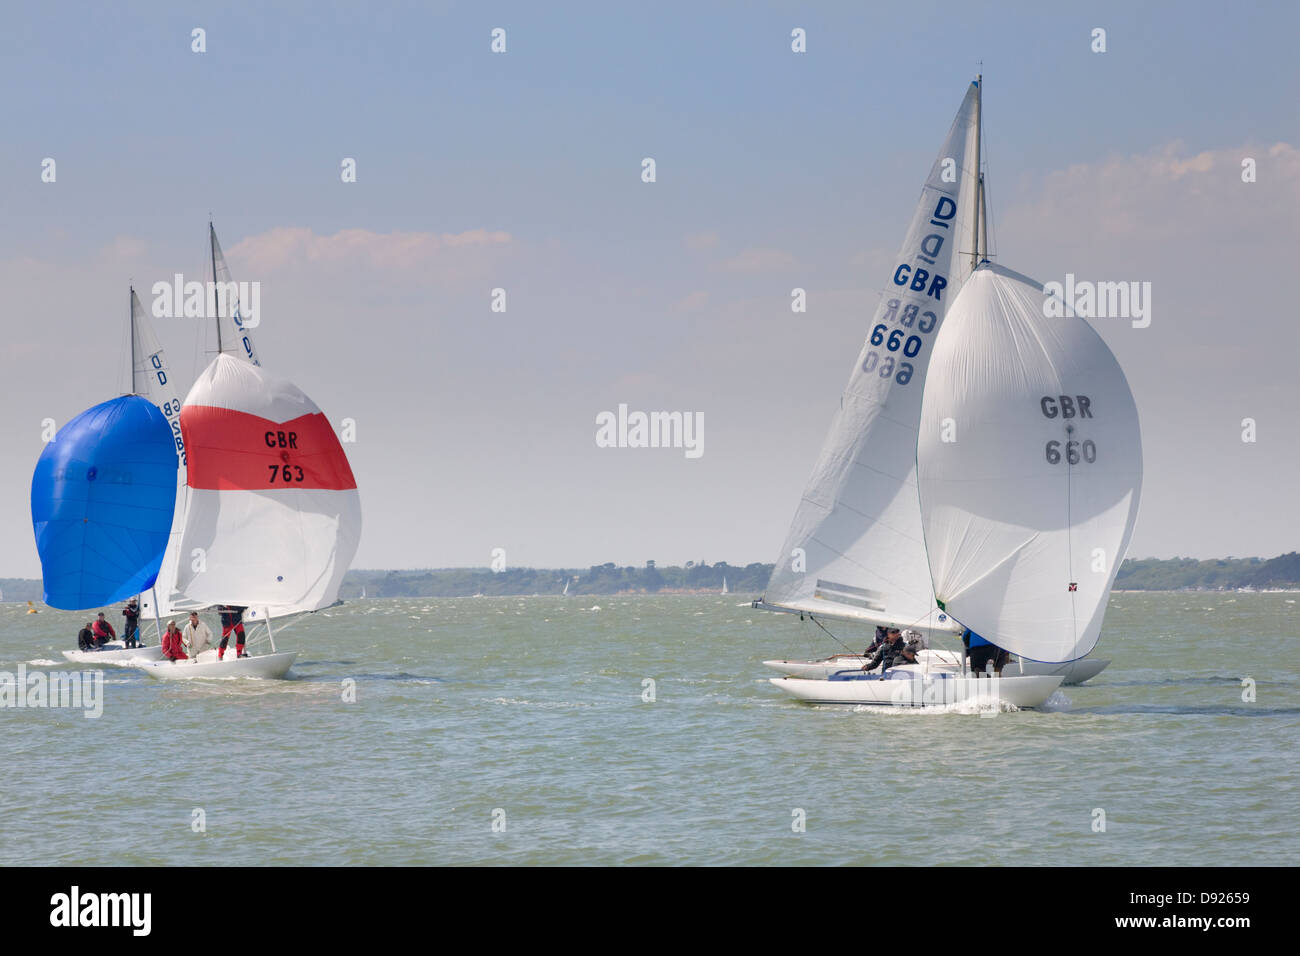 Sailing dinghies in the Solent - Stock Image